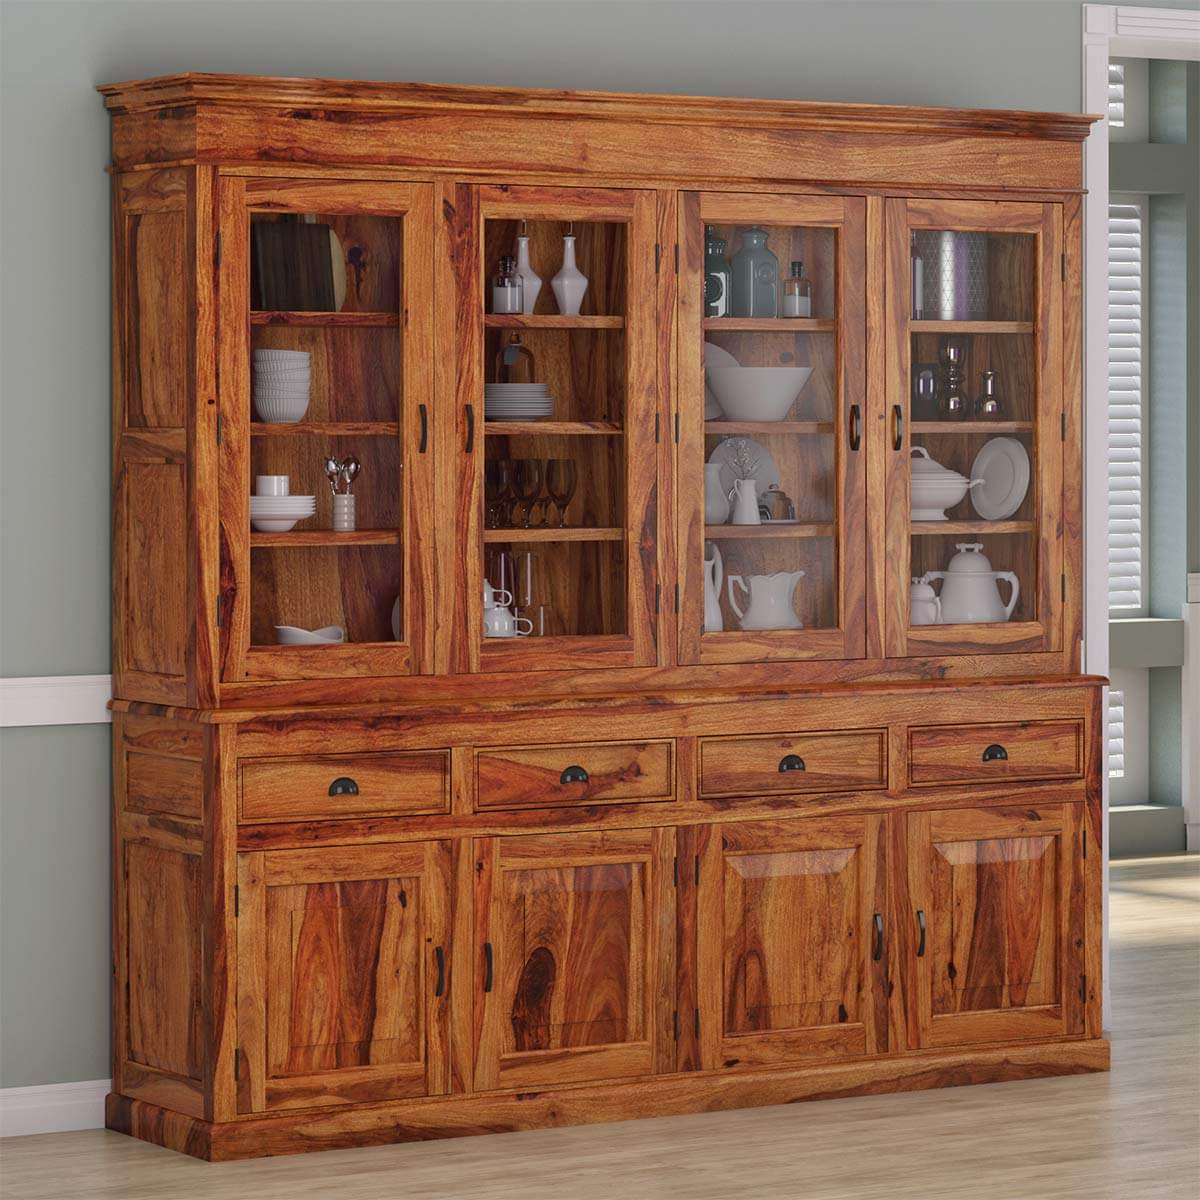 Cariboo Contemporary Rustic Solid Wood Dining Room Large Buffet Hutch Pertaining To Contemporary Espresso 2 Cabinet Dining Buffets (View 2 of 20)